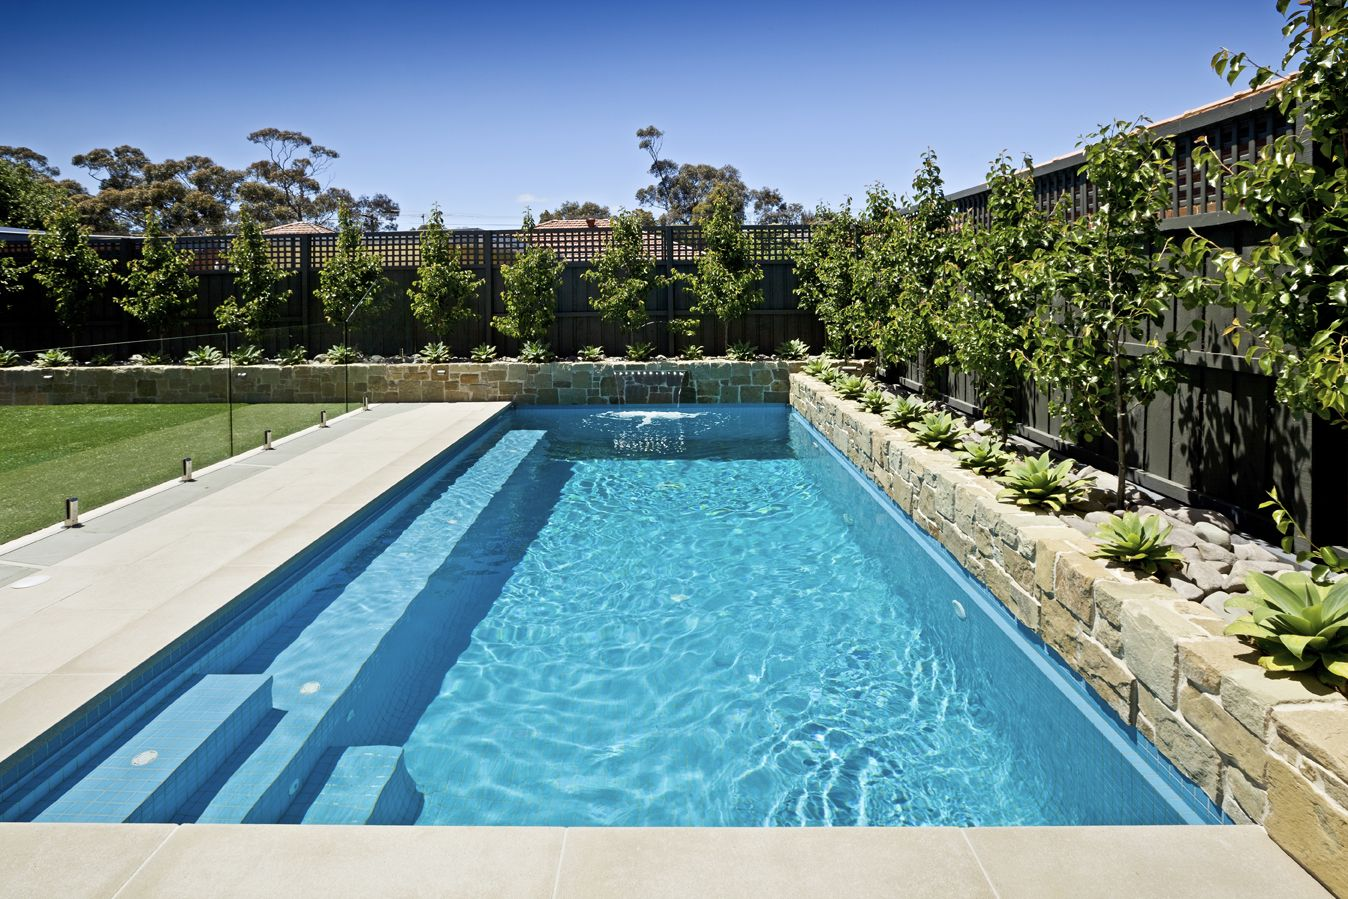 Concrete Swimming Pool With Infloor Cleaning System And Automatic Pool  Concrete Pool Designs